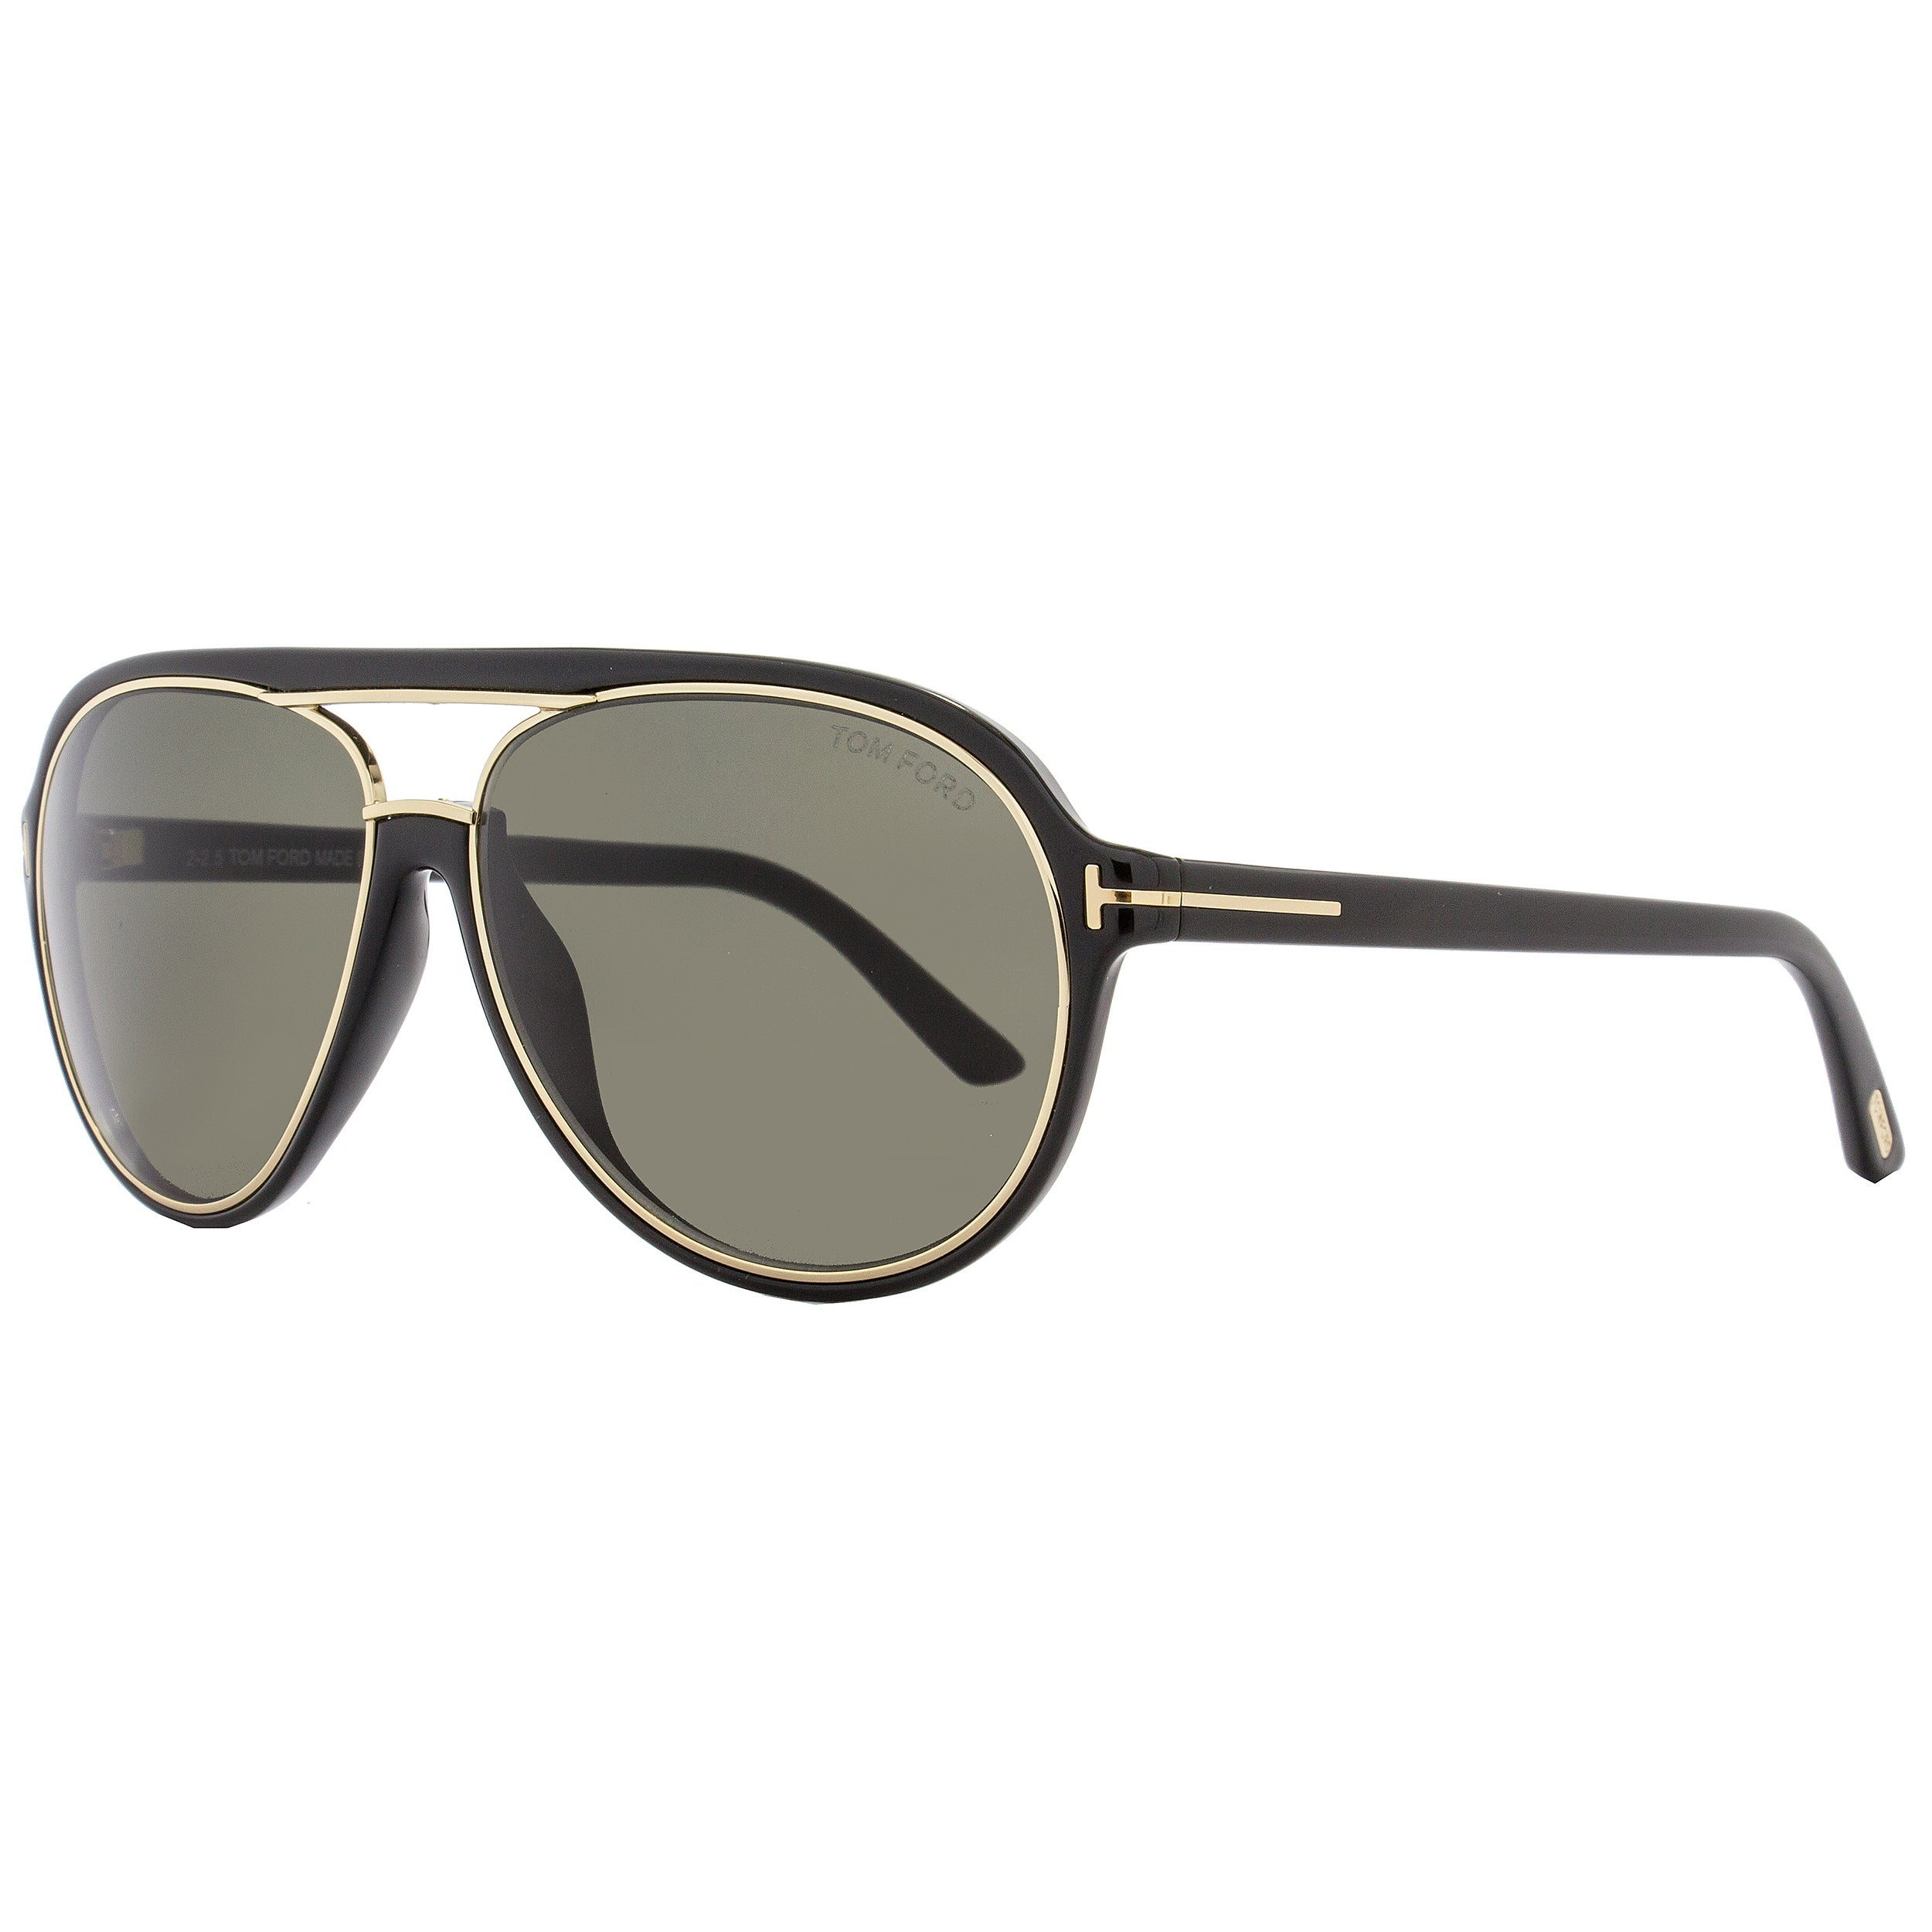 da163852cd11c Shop Tom Ford TF379 Sergio 01A Women s Shiny Black Gold Gray Lens Sunglasses  - Free Shipping Today - Overstock - 18153225